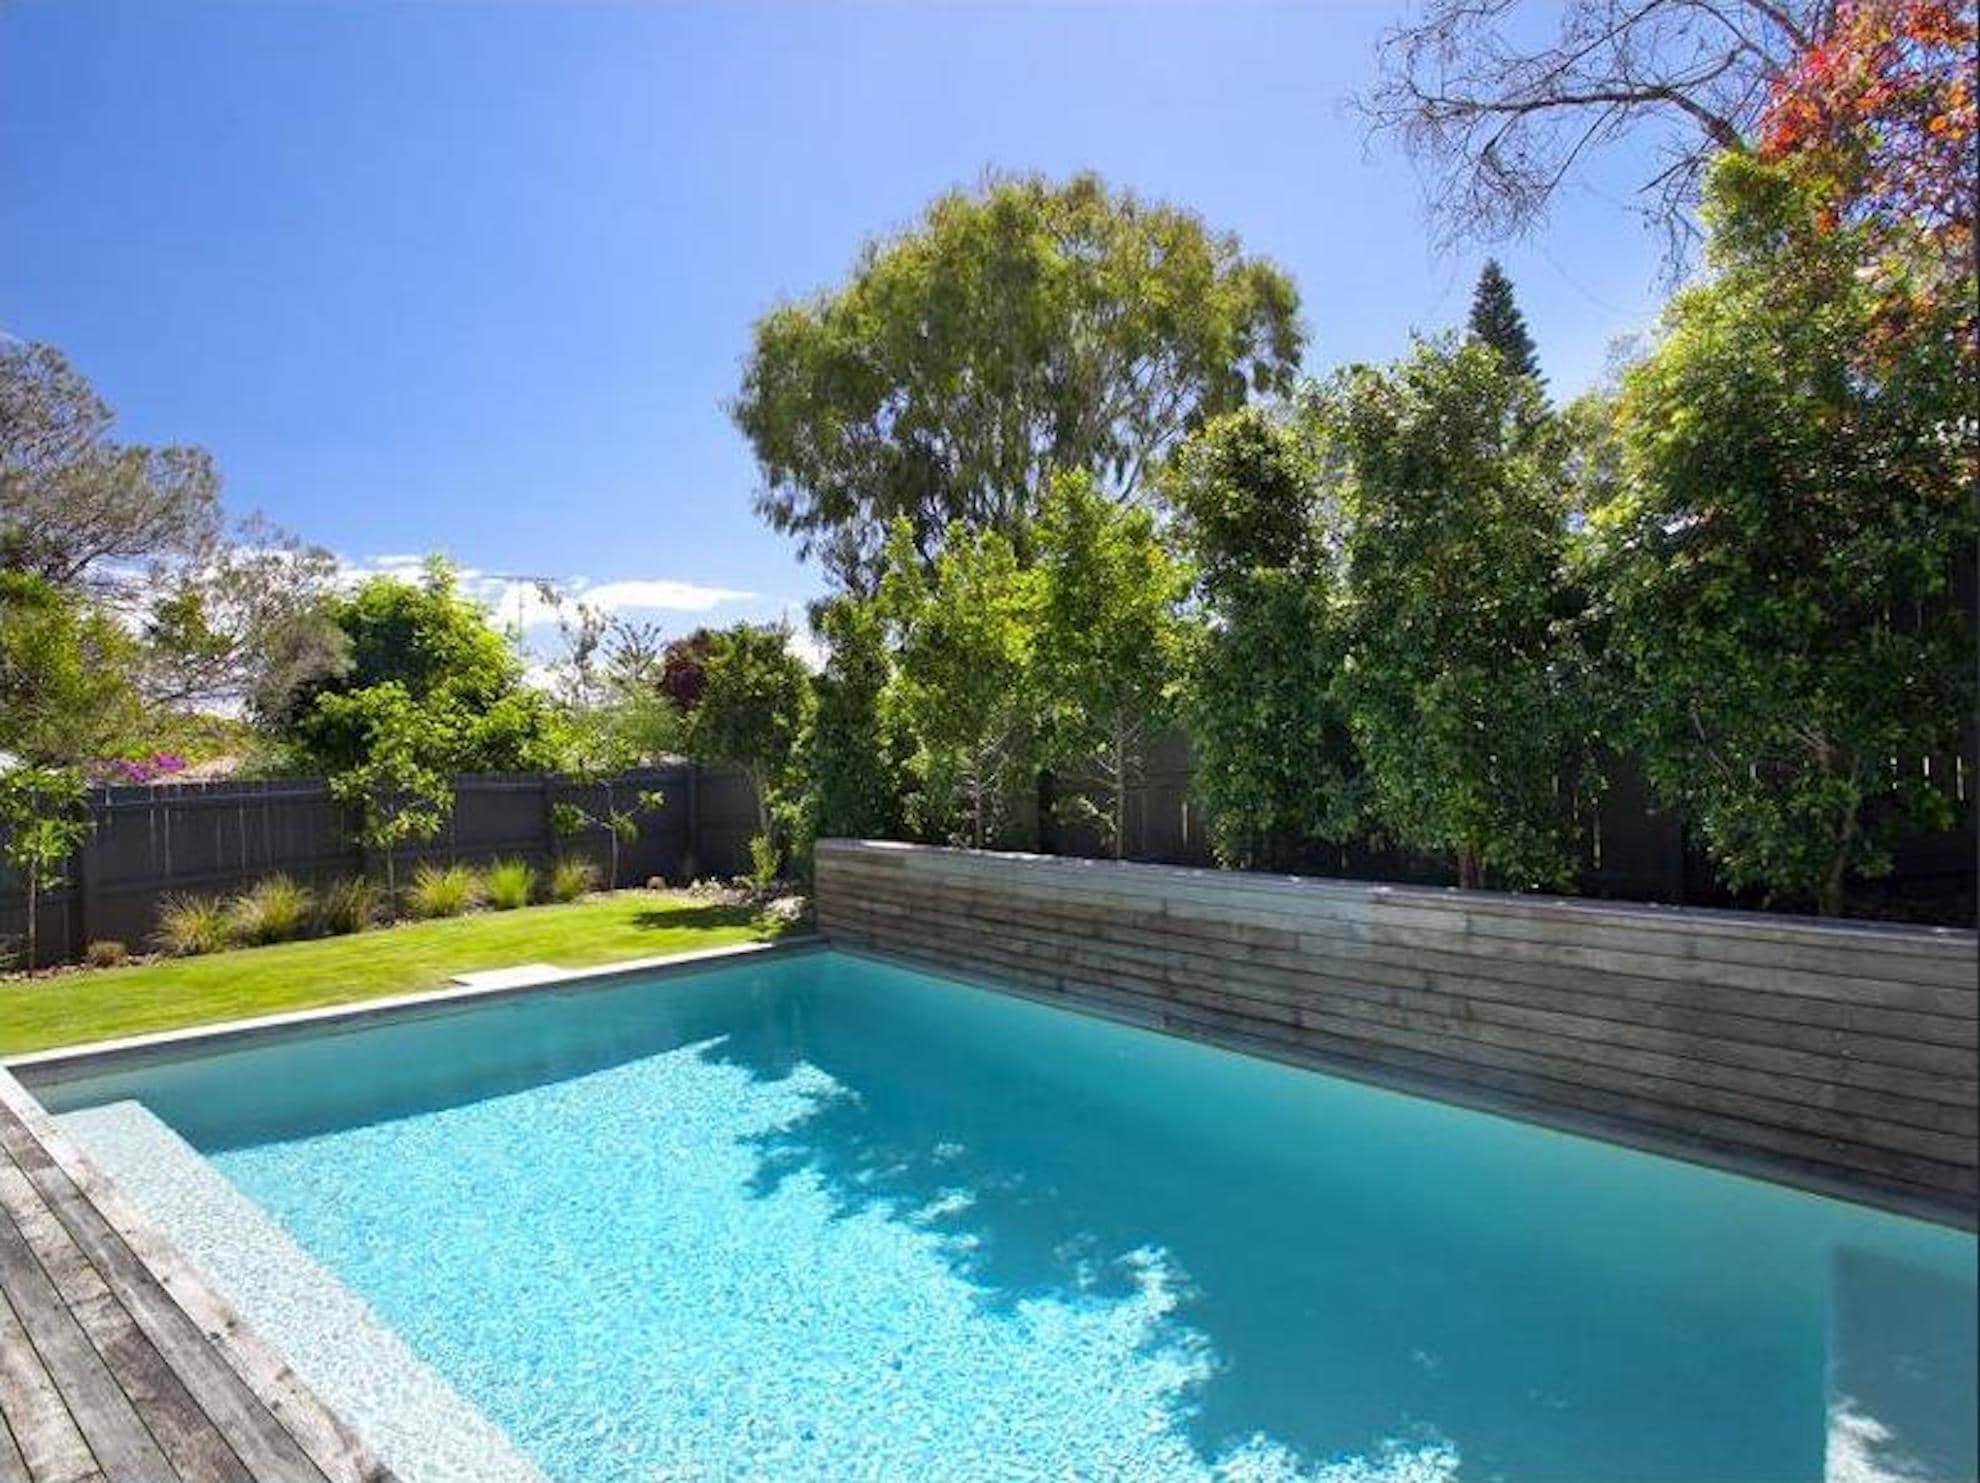 Ranger Court project by mdesign, a building design practice that operates on the Sunshine Coast.